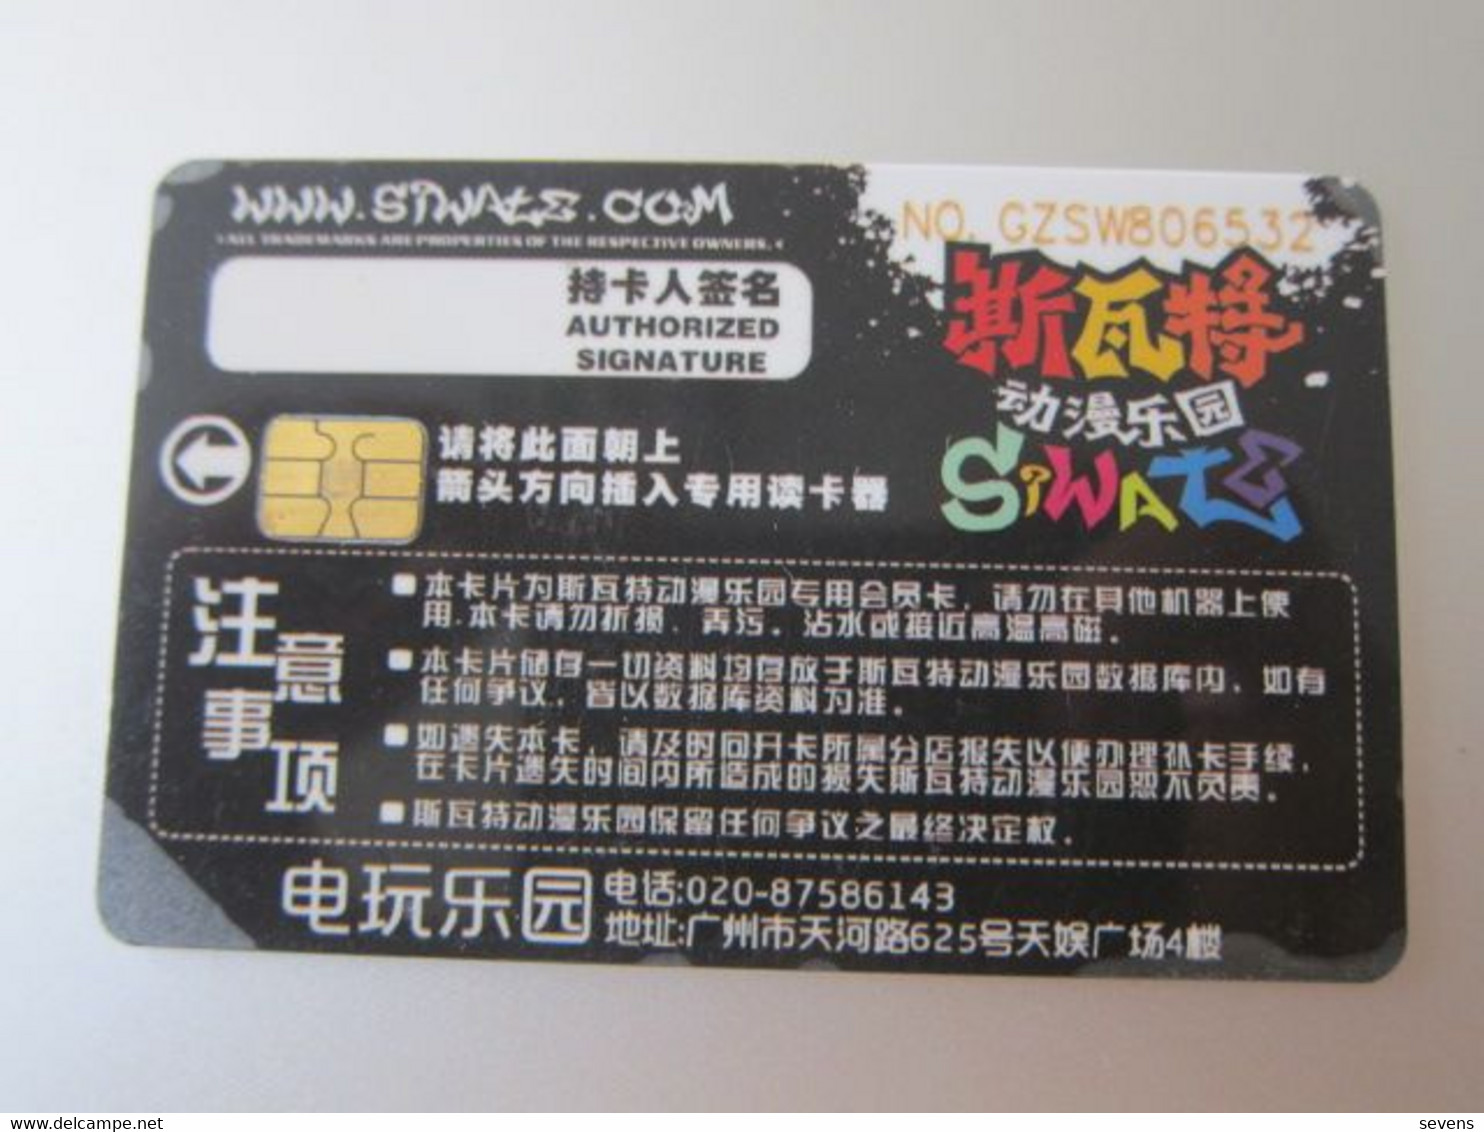 Siwate.com Membership Chip Card(access Card) - Unclassified